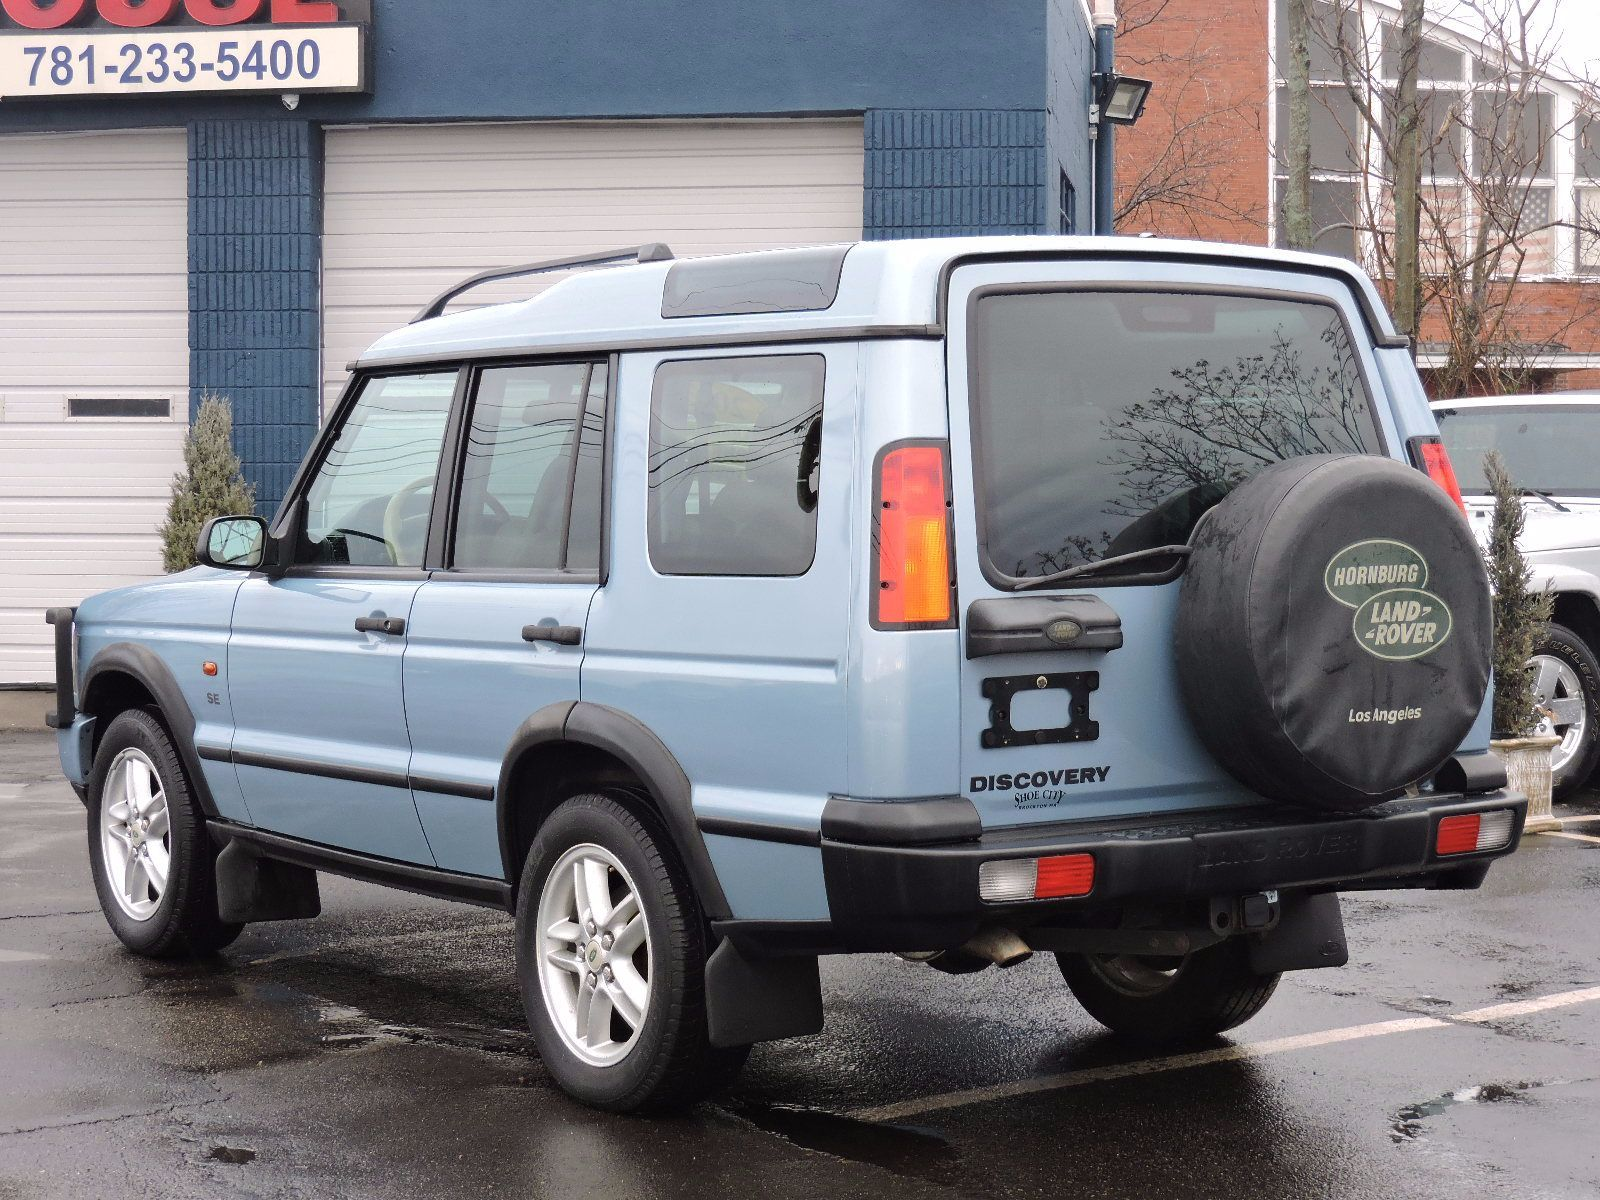 media land rover grey sd wheels main image for landrover gs id advert discovery sale gallery classified